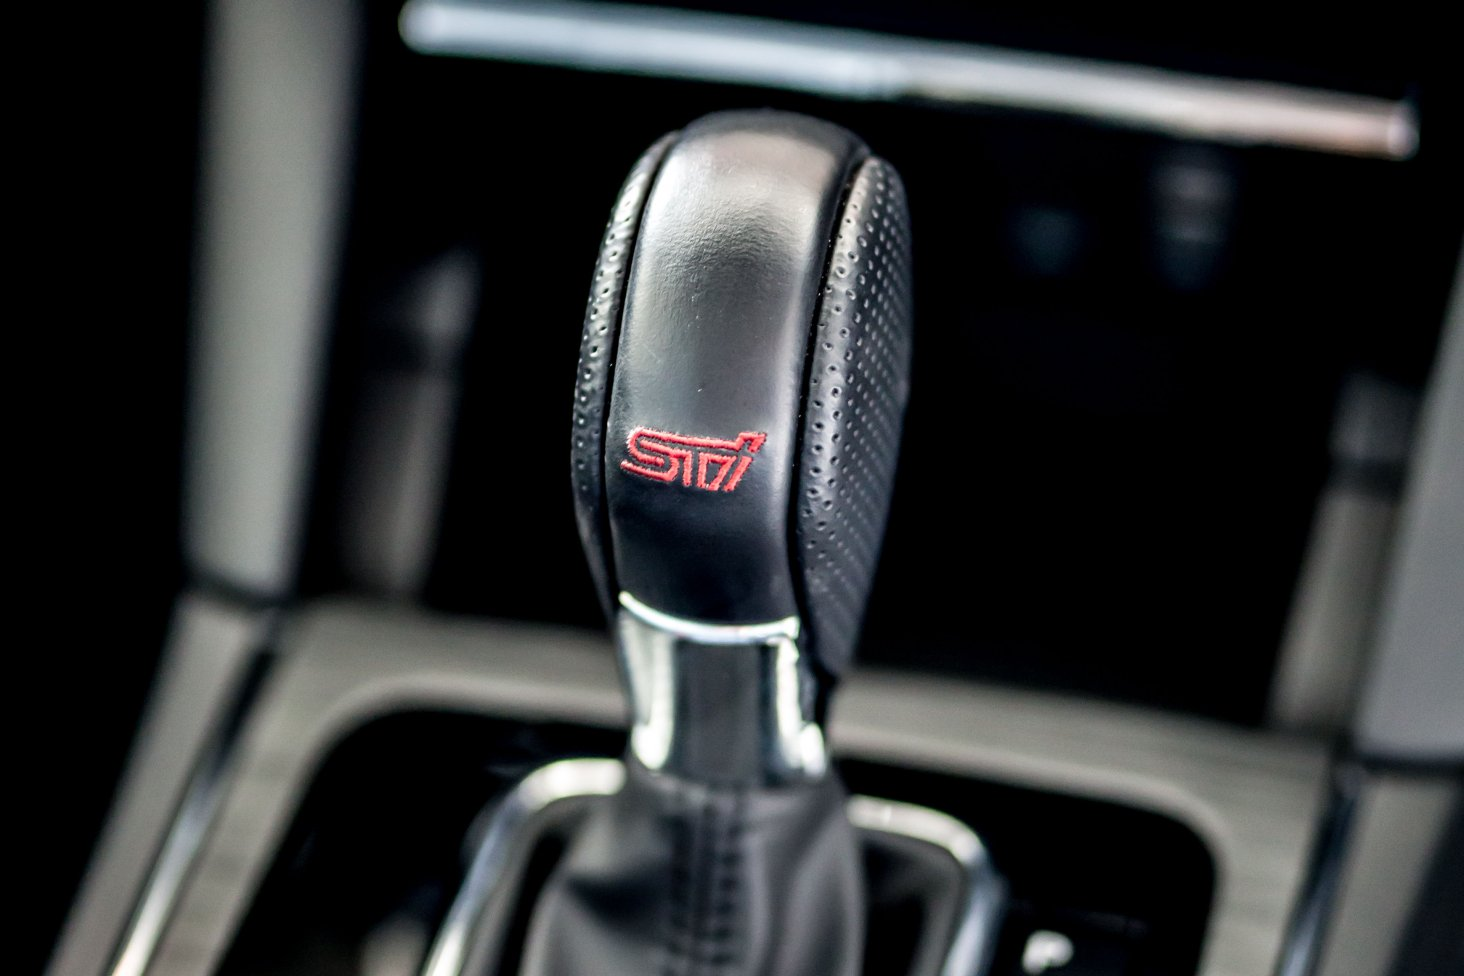 Subaru Legacy 3.6RS with STI Performance_STI gear shift knob